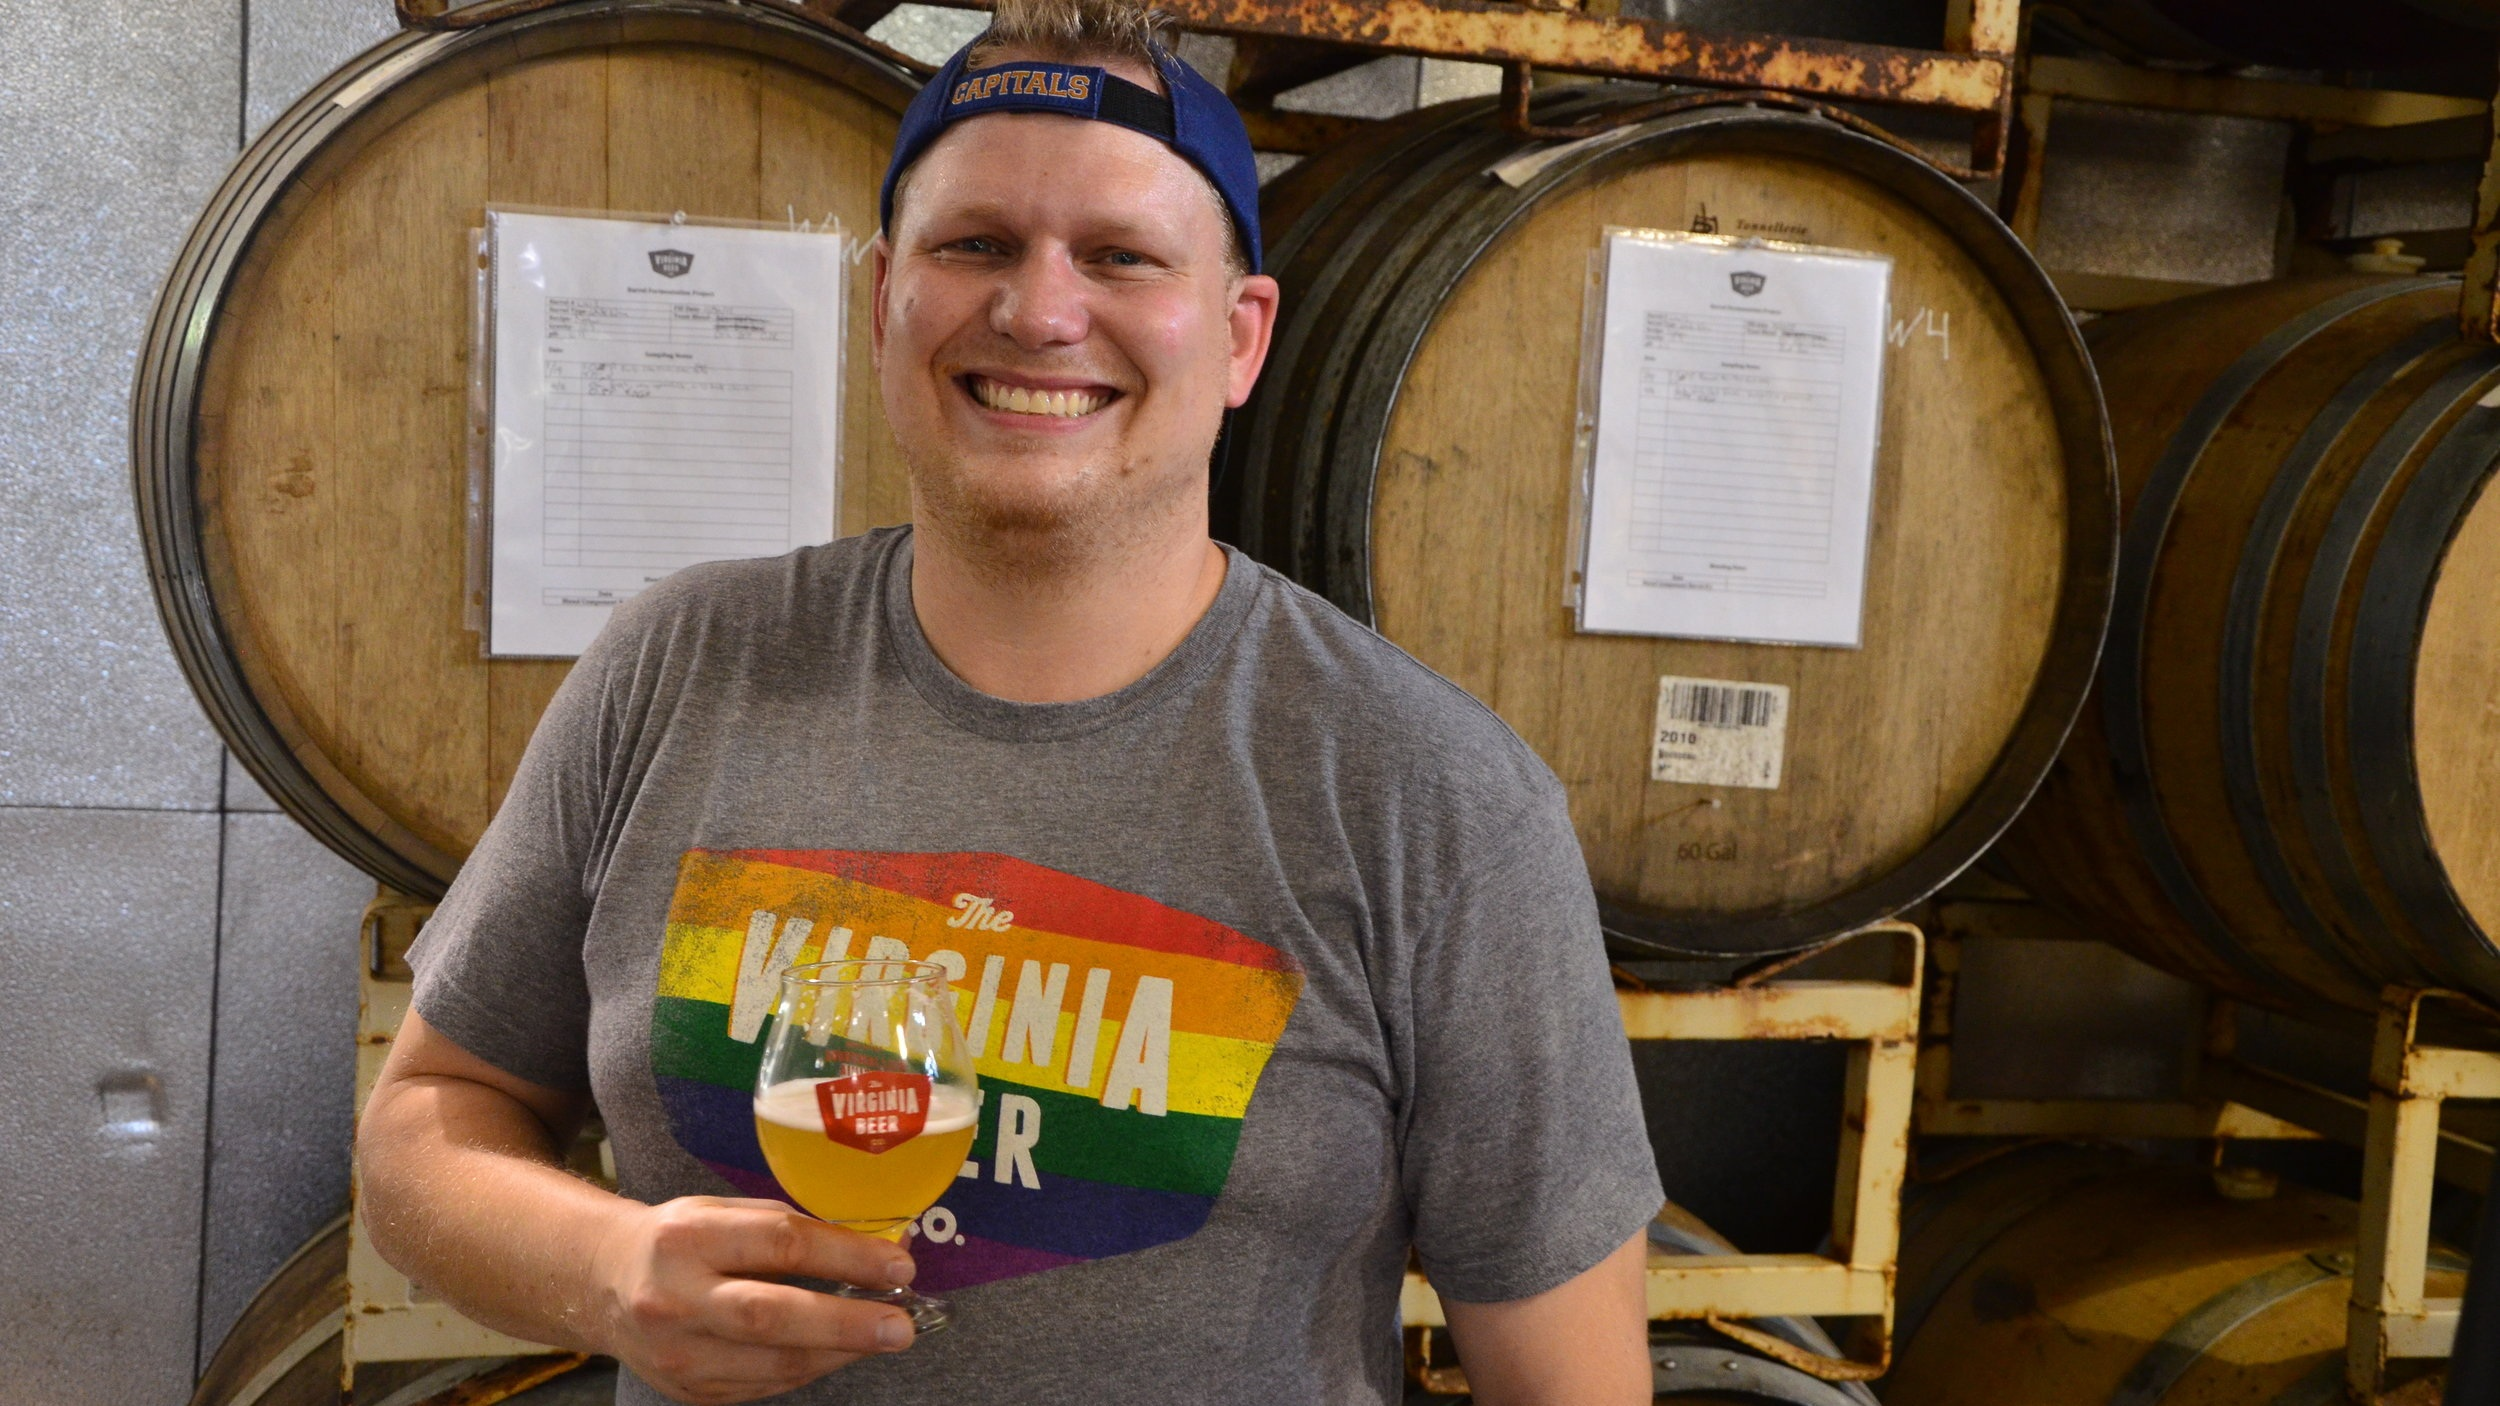 Robert Wiley is co-owner of The Virginia Beer Company in Williamsburg, Virginia.